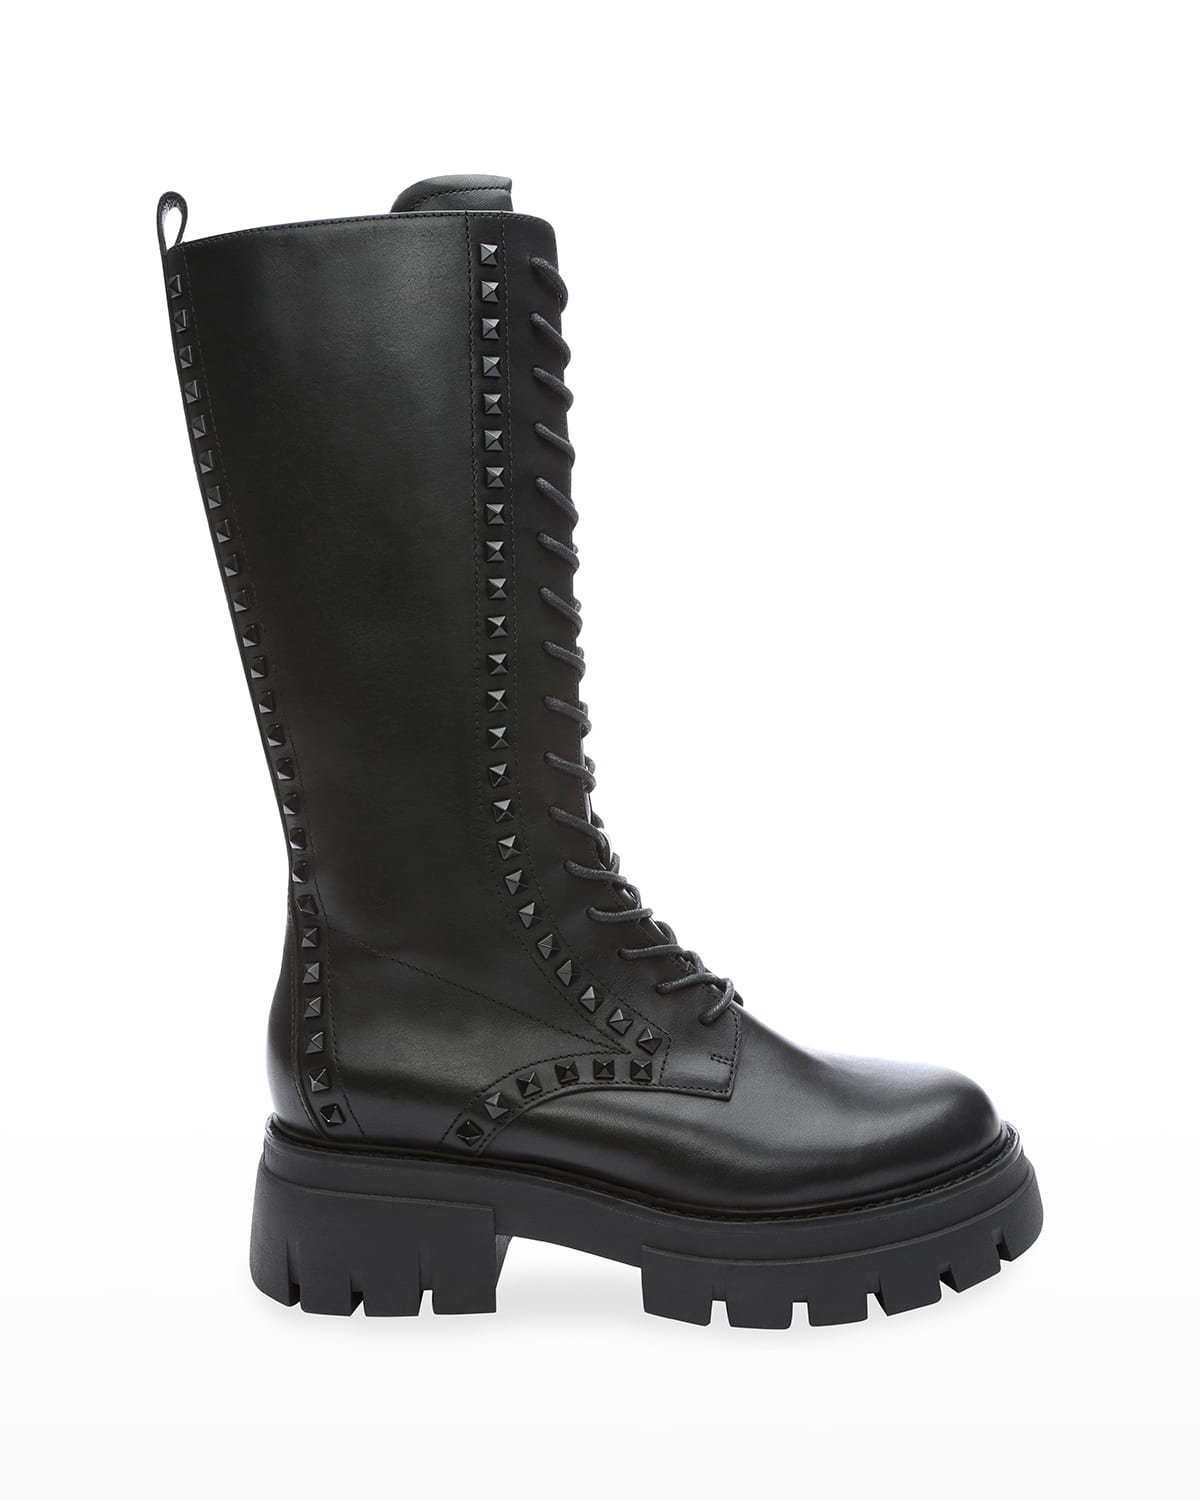 Lullaby Studded Leather Tall Combat Boots